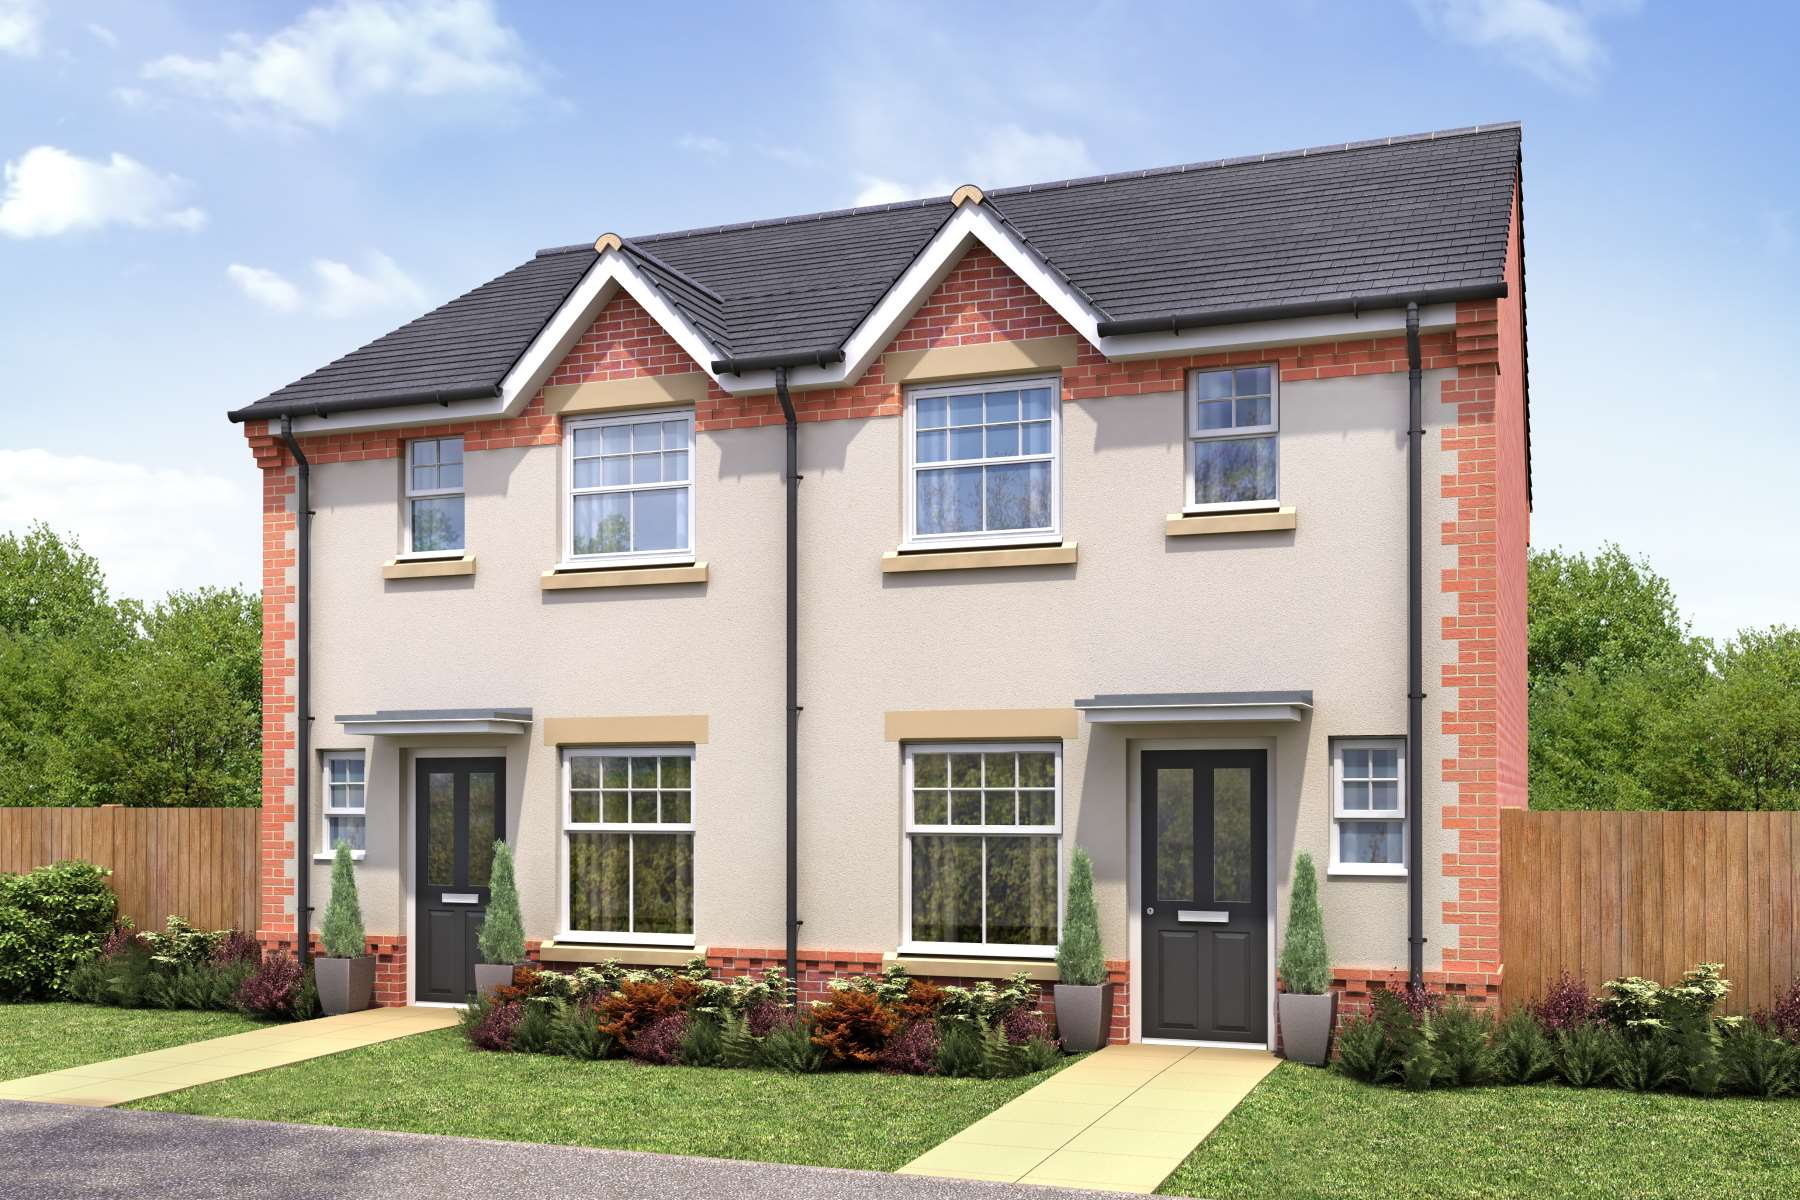 Booth hall new homes in blackley taylor wimpey for New house hall